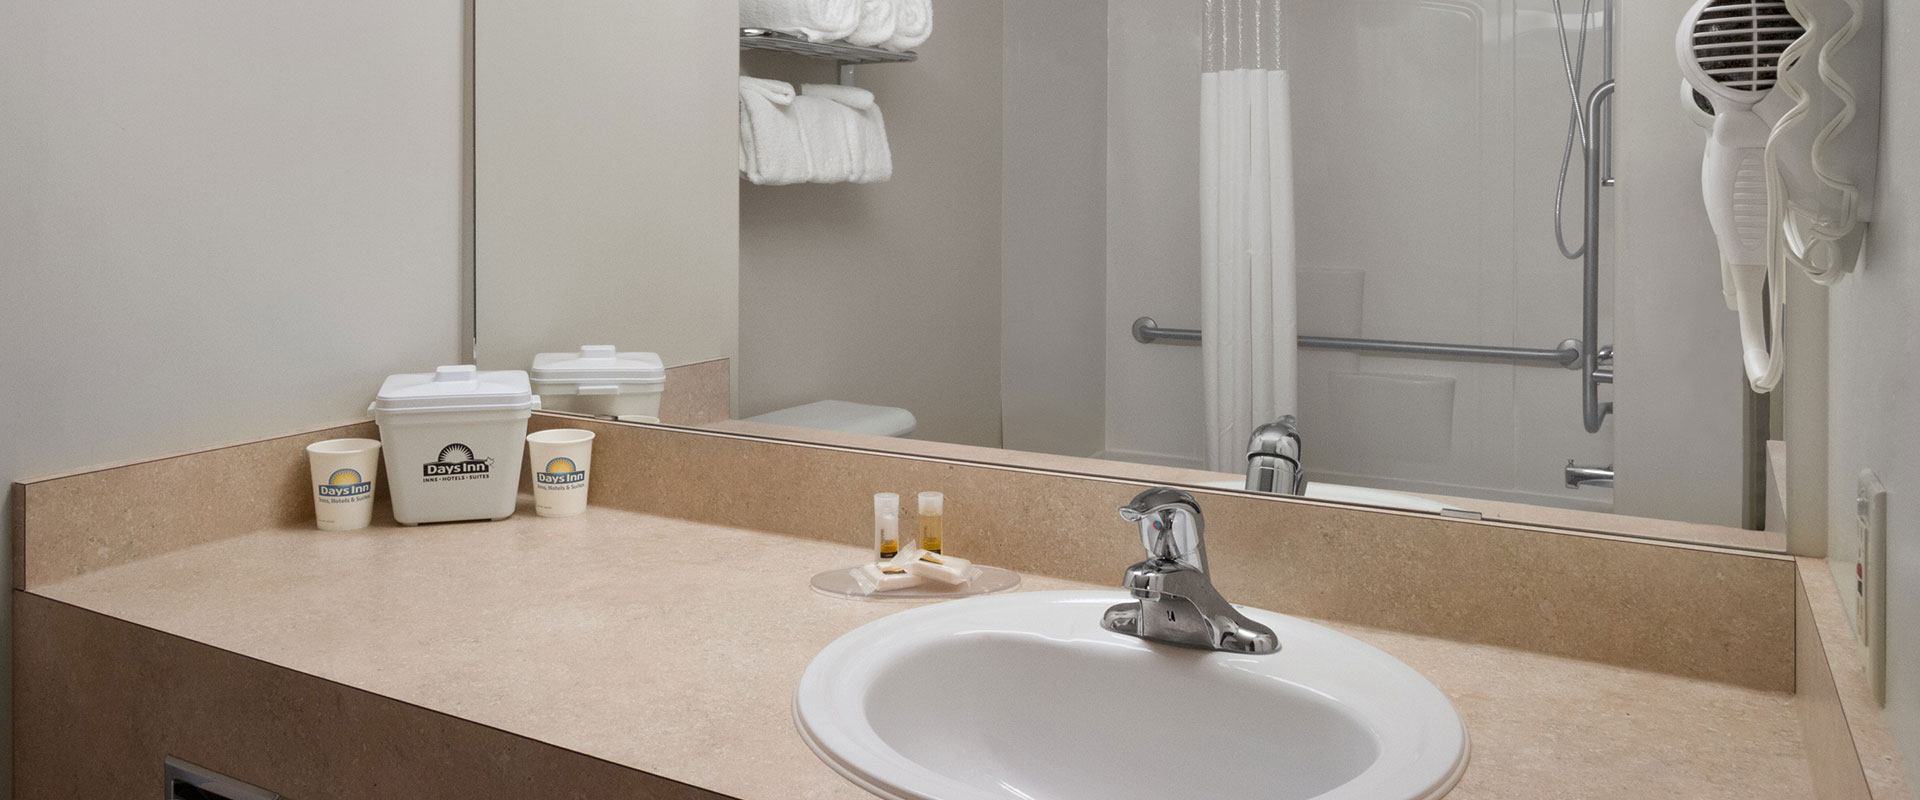 A typical bathroom suite at Days Inn Red Deer, Alberta features stocked linen, hair dryer, complimentary soap and paper cups with company logo.